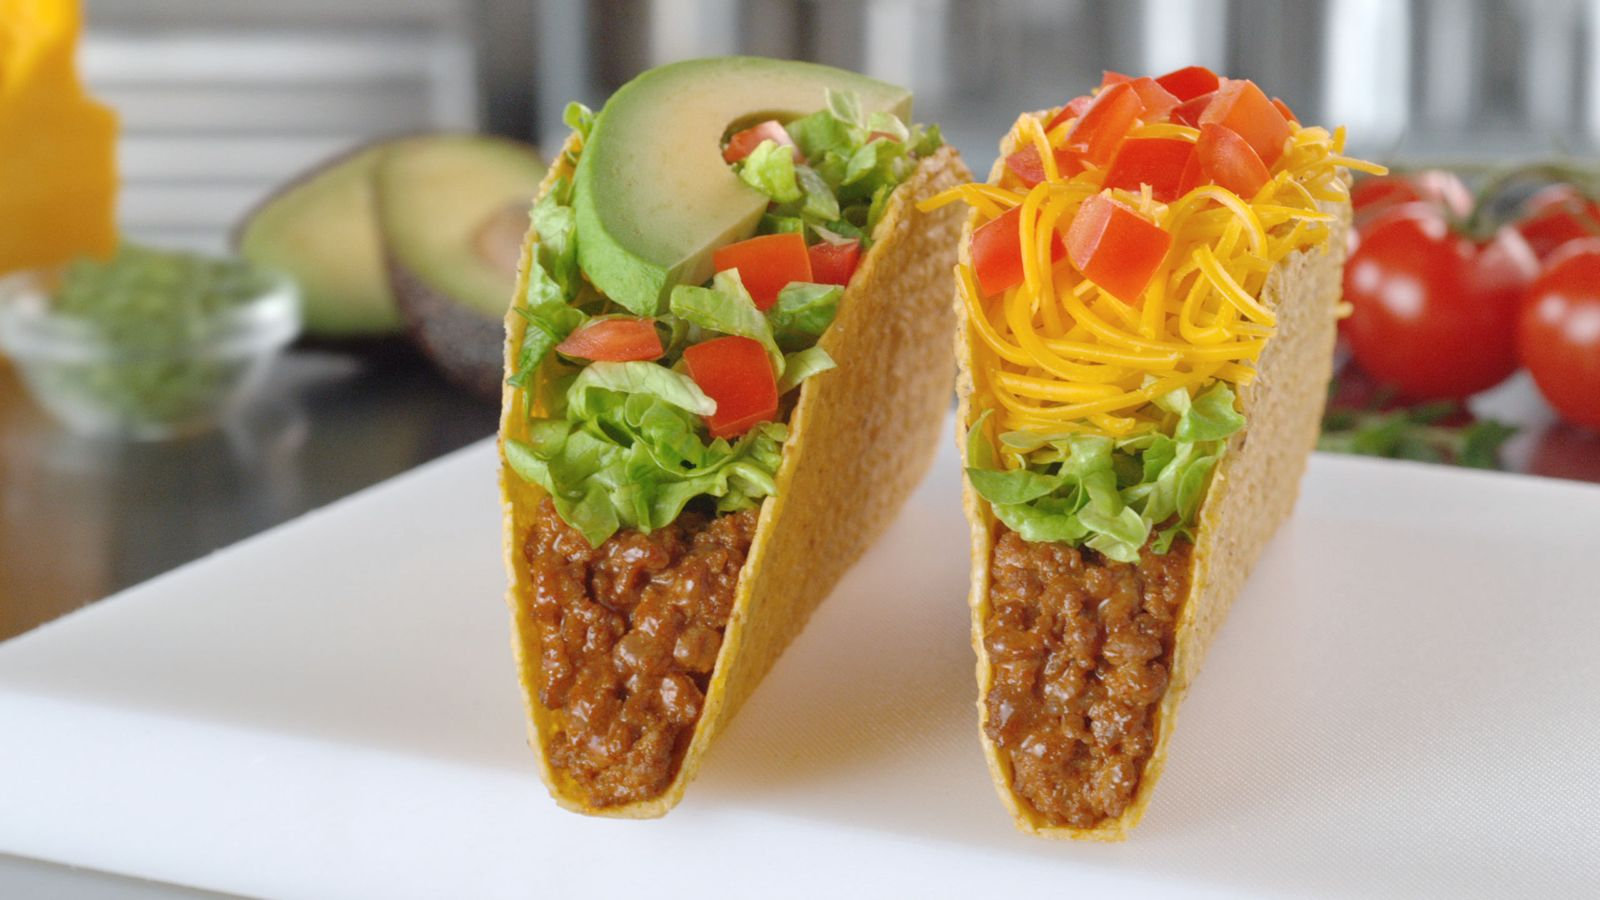 Food Resturant Leading Mexican Fast Food Restaurant Del Taco Introduces The